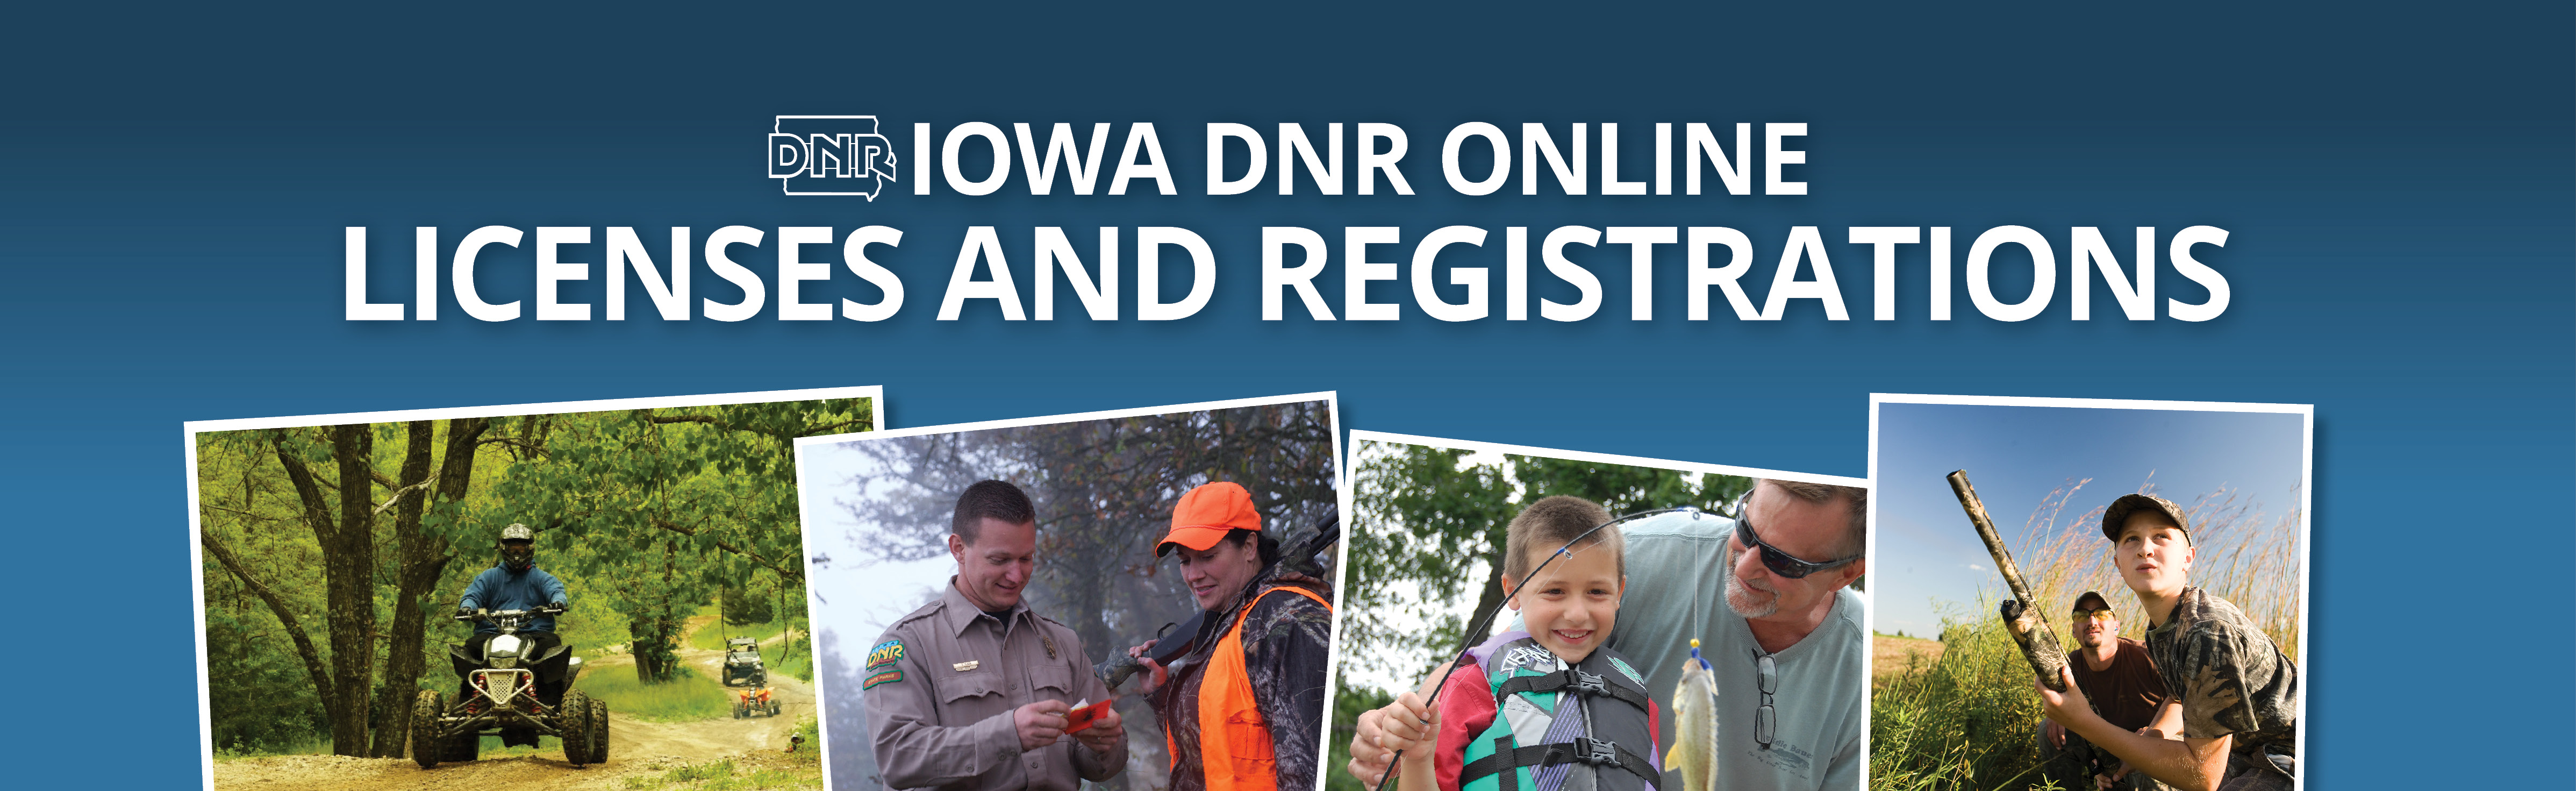 iowa dnr hunting fishing license online registration